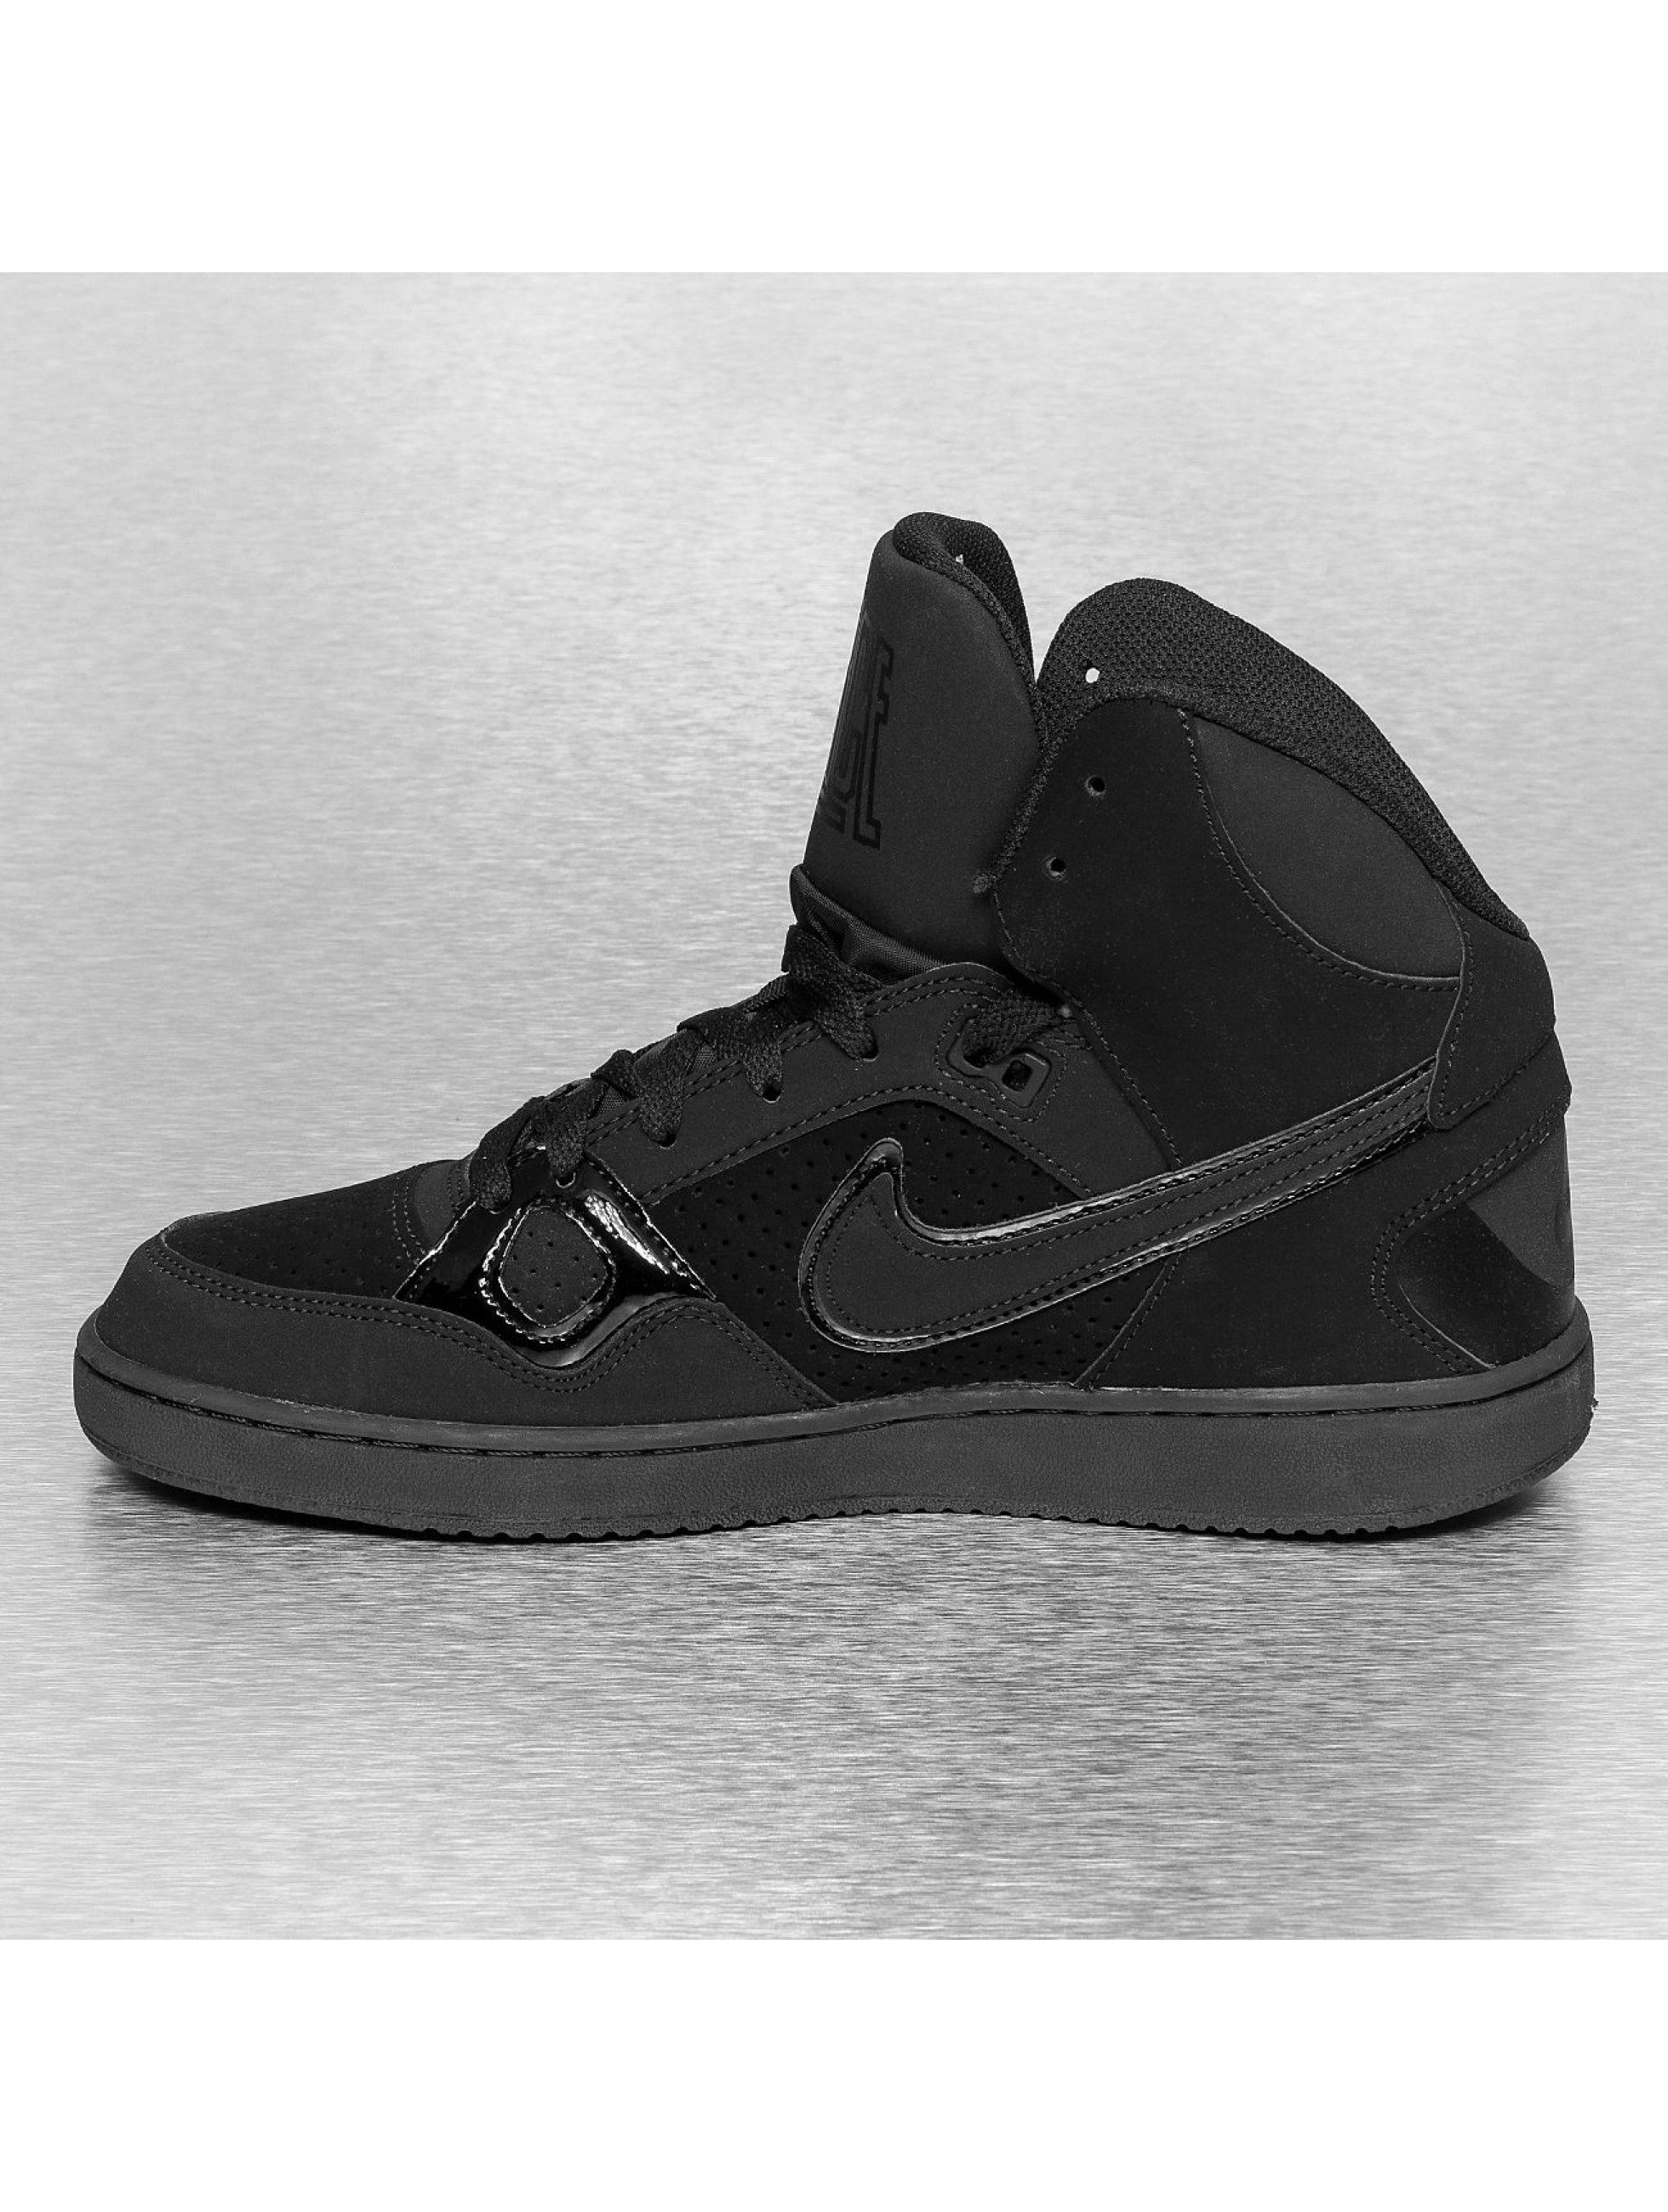 nike sneaker schwarz gold augmented reality. Black Bedroom Furniture Sets. Home Design Ideas